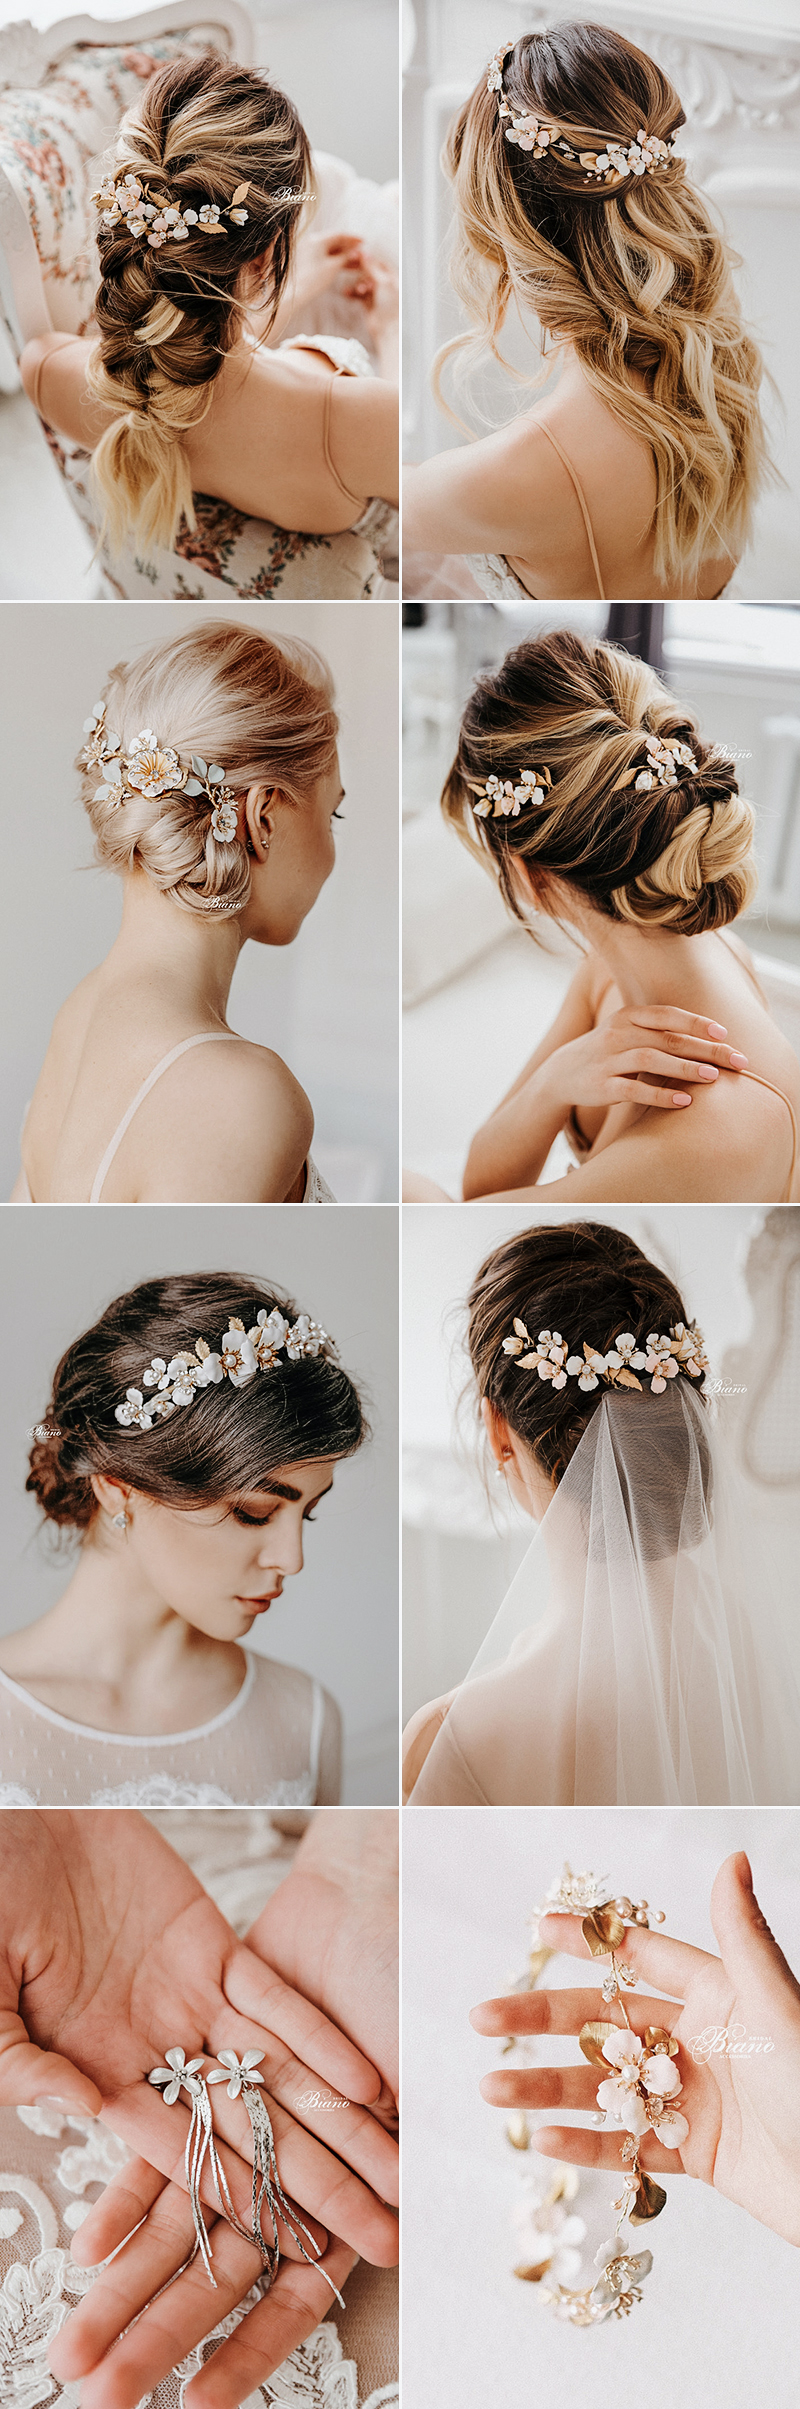 Handmade bridal accessories